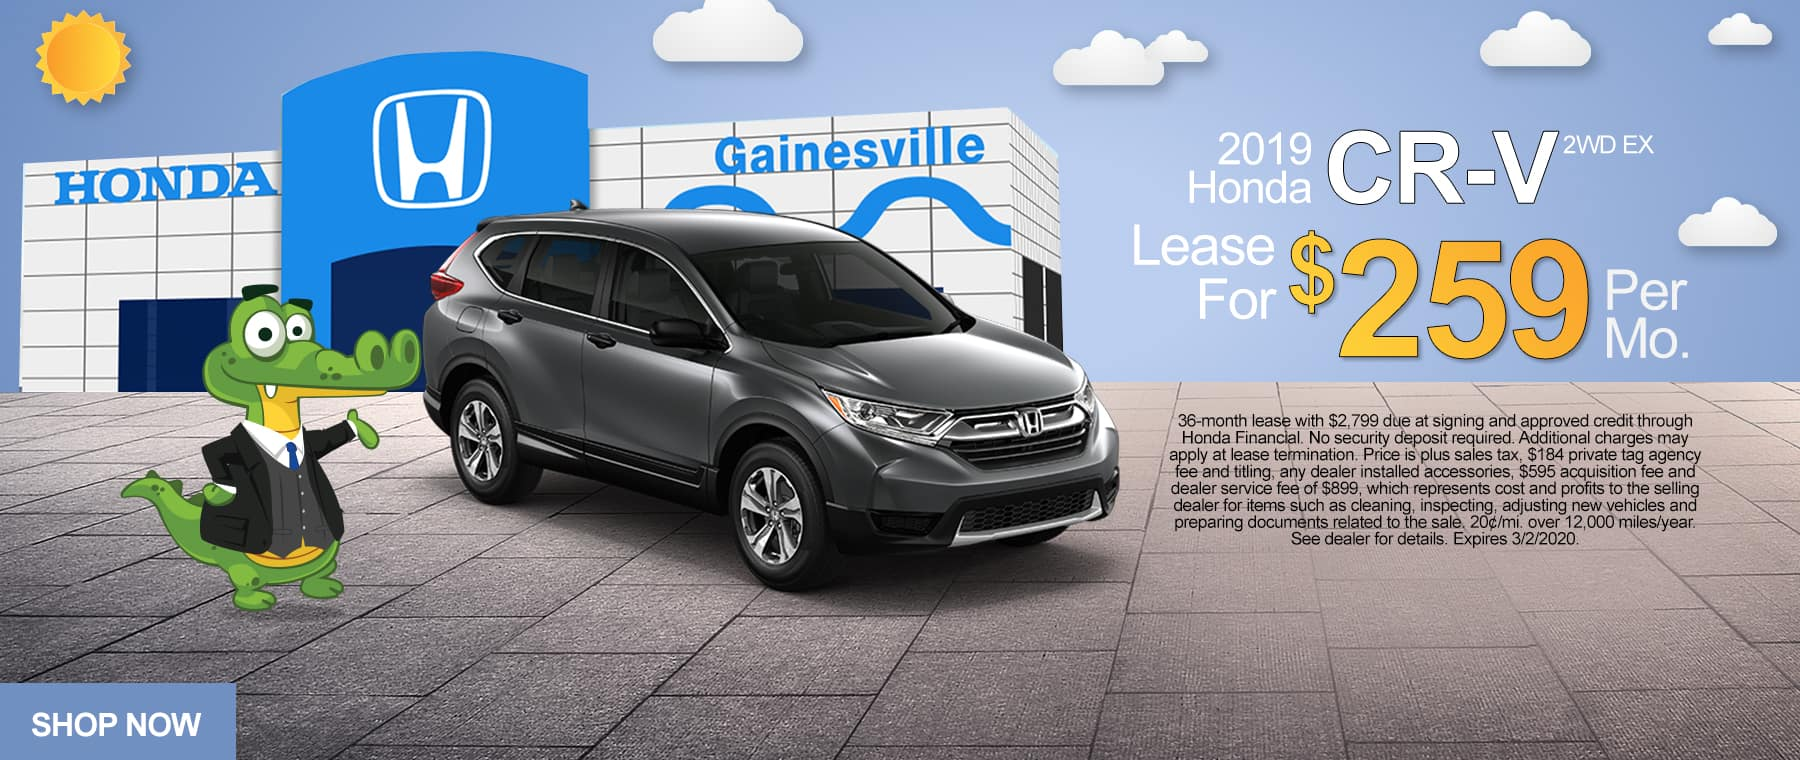 New 2019 Honda CR-V 2WD EX | Lease For $259/Mo